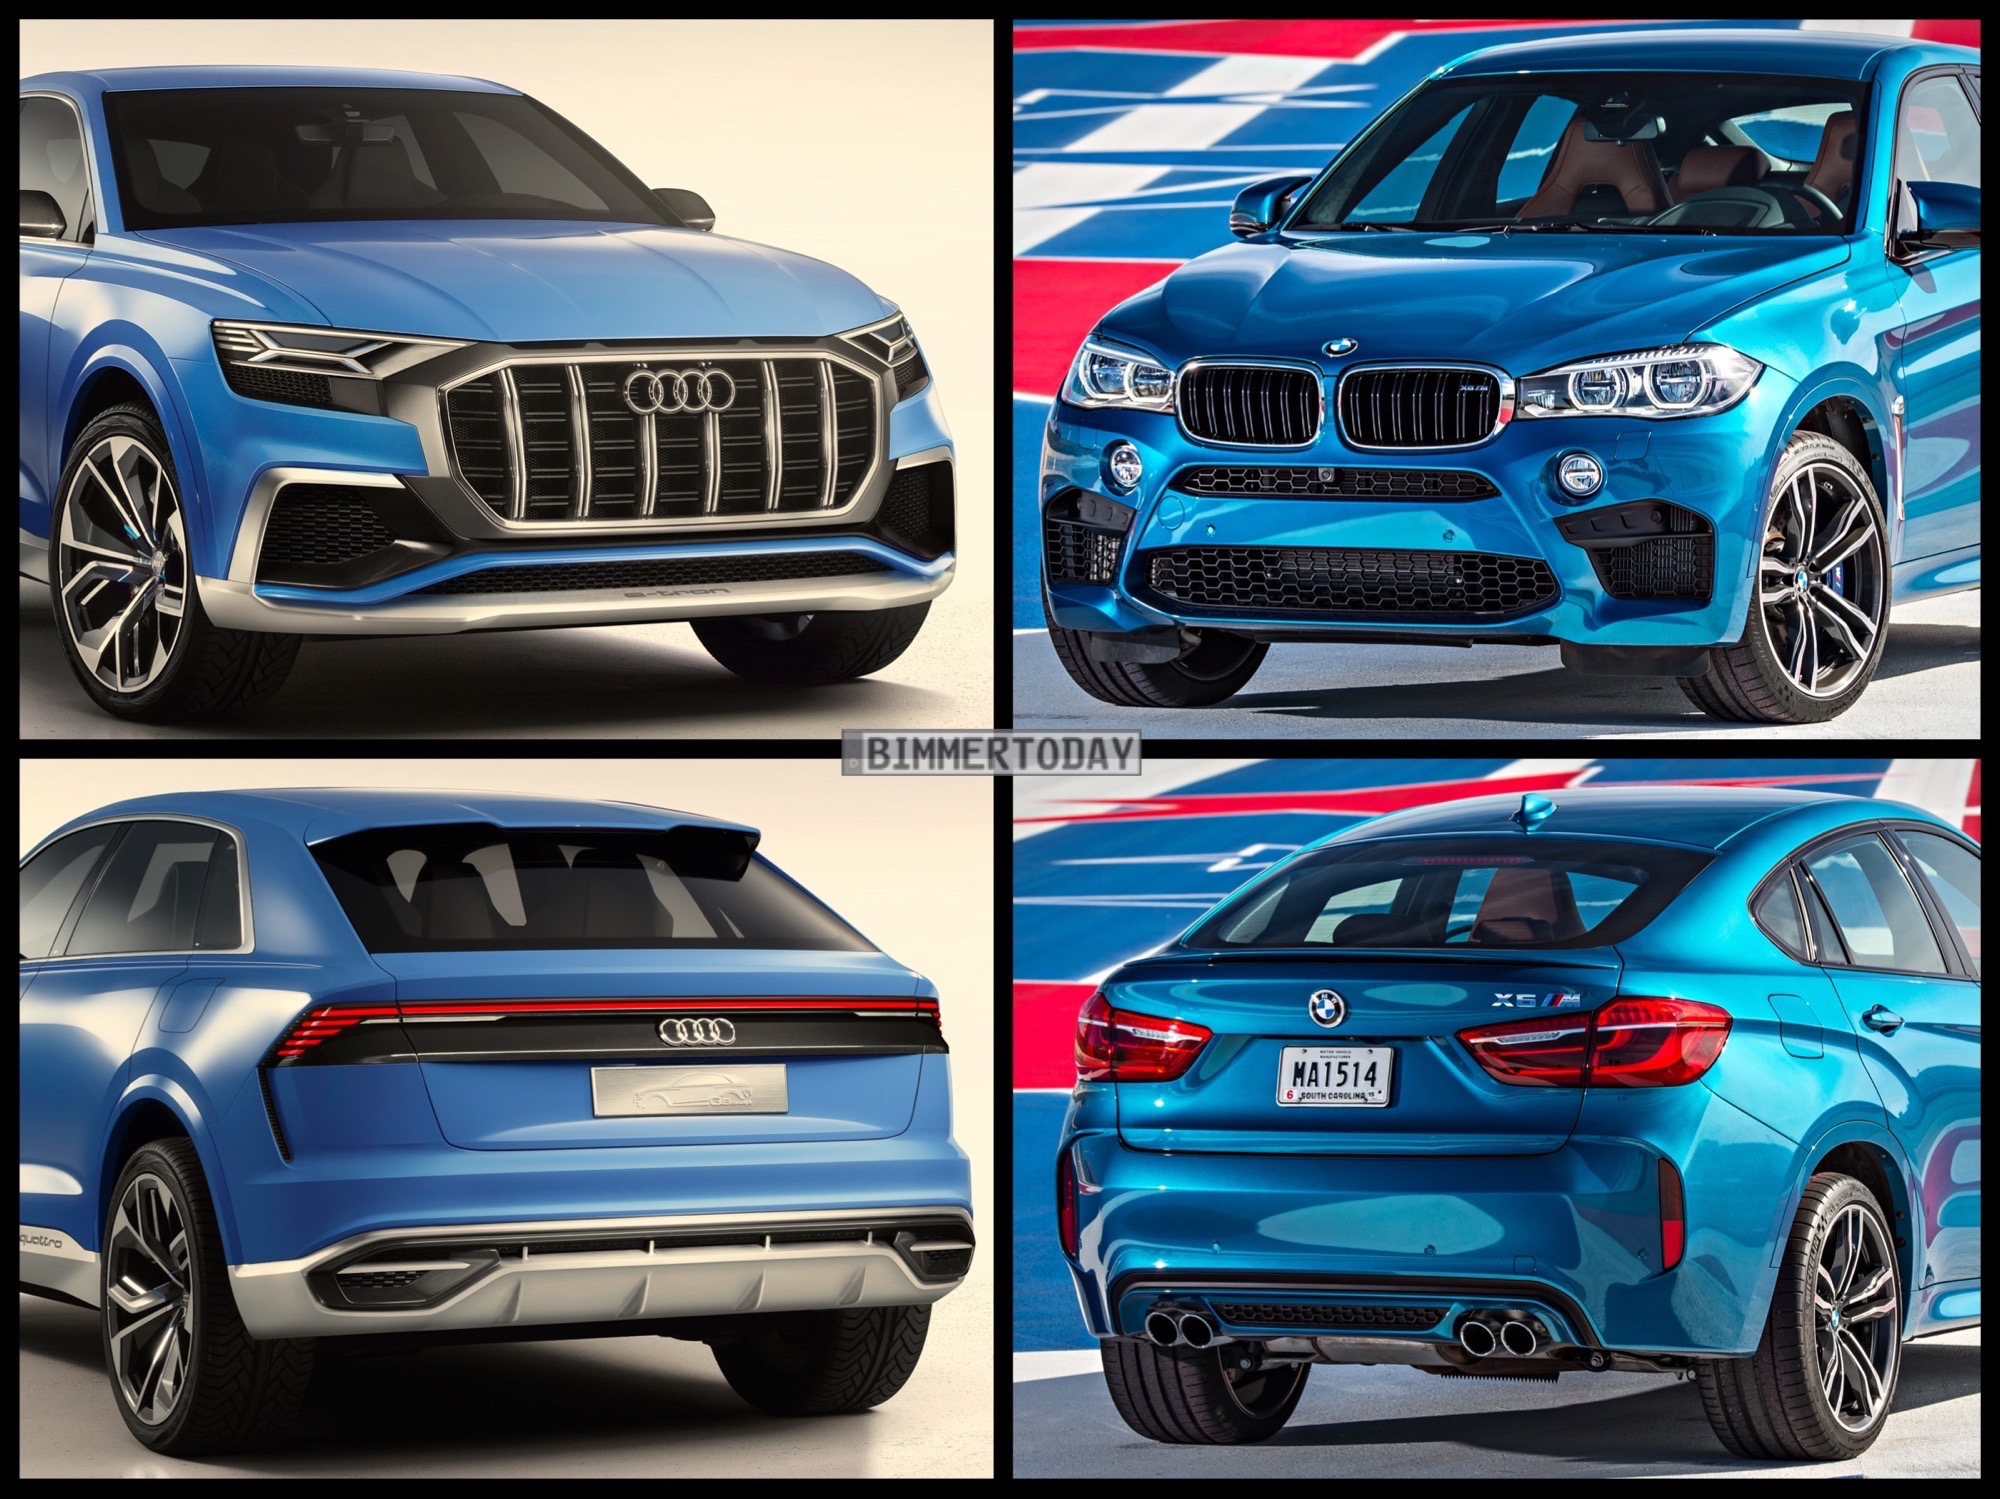 Photo Comparison Audi Q8 Vs Bmw X6 M